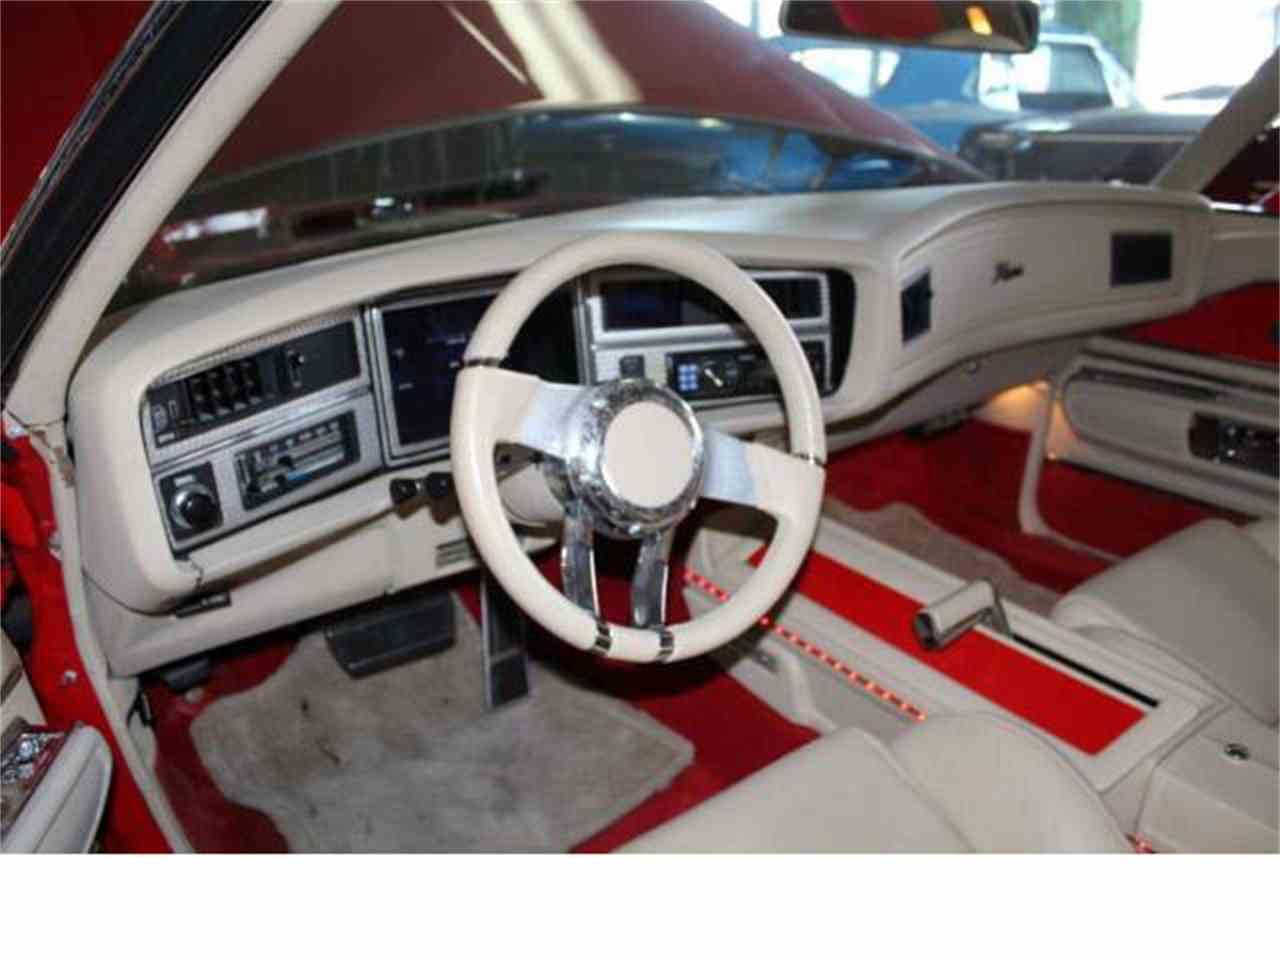 Large Picture of Classic '71 Buick Riviera located in Tacoma Washington Auction Vehicle - M5PM